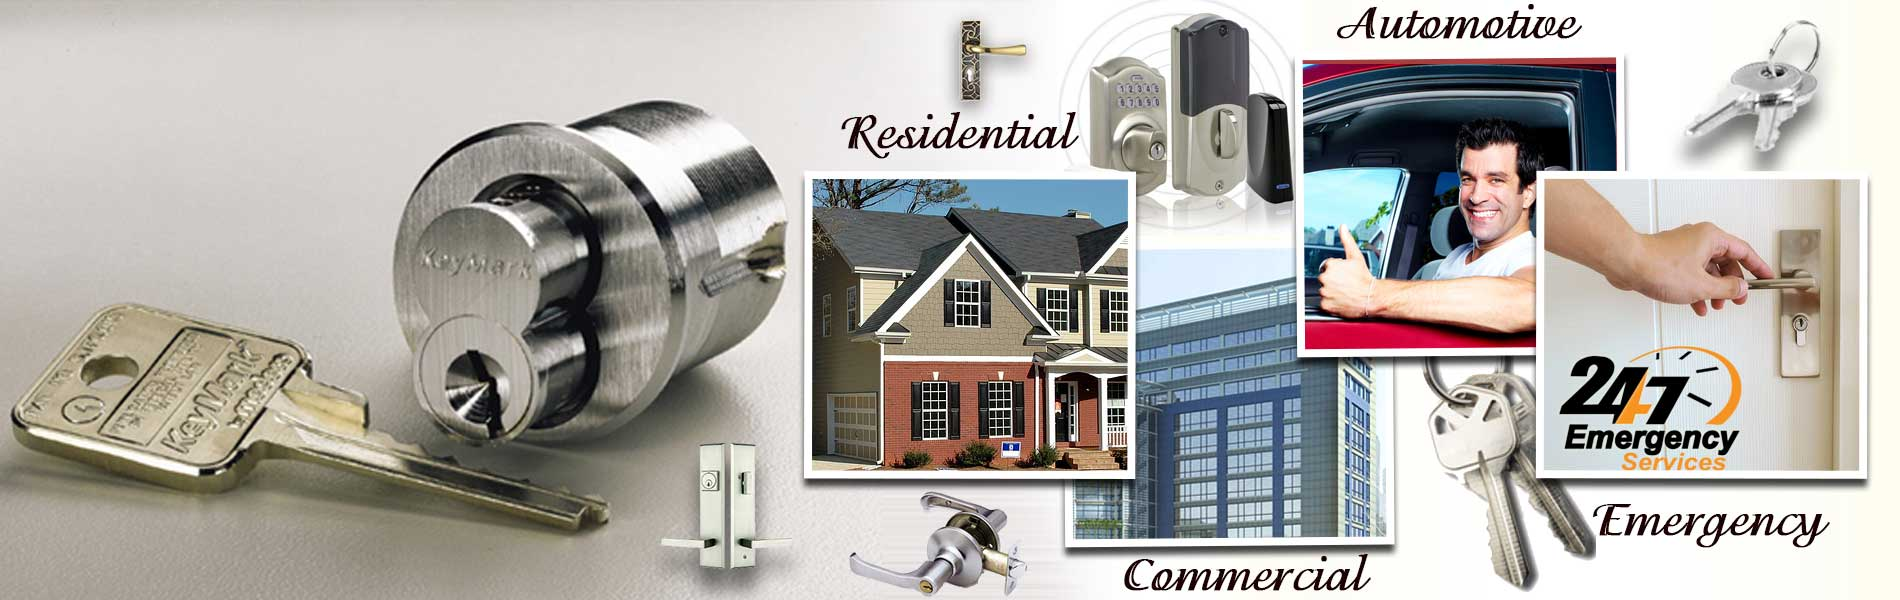 Town Center Locksmith Shop Burbank, CA 818-492-3078